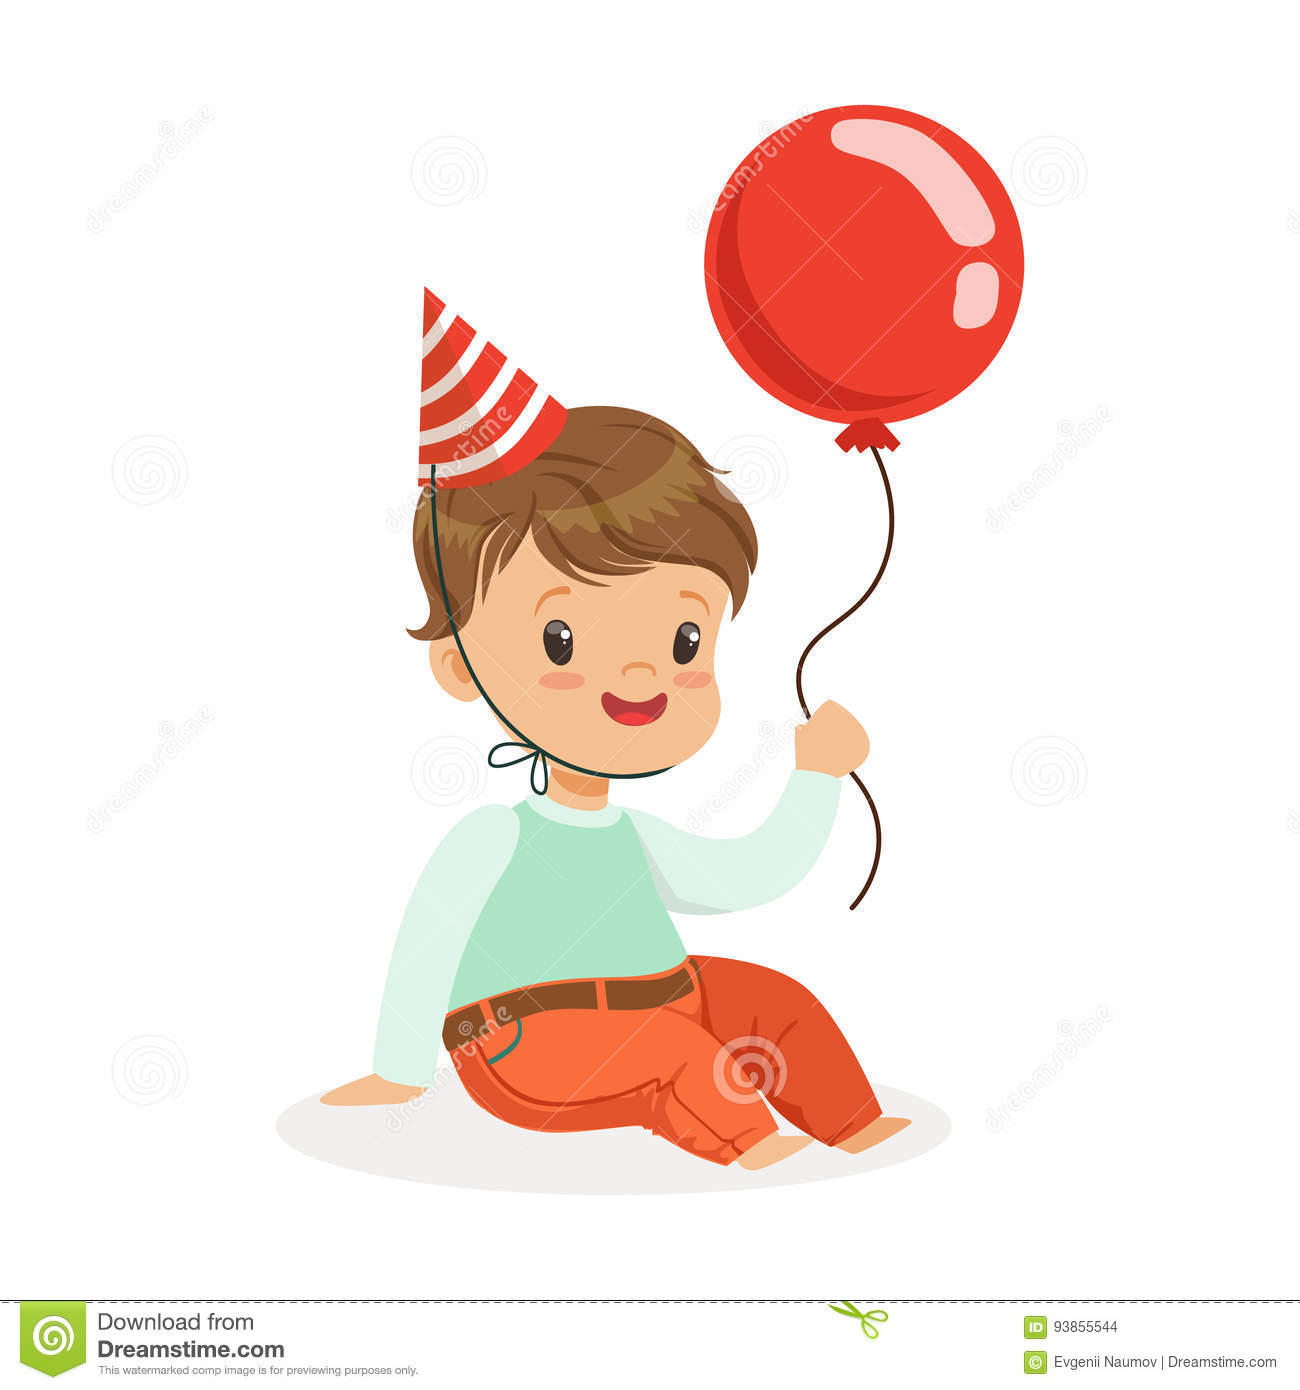 Cartoon Characters Birthdays : Adorable baby boy wearing a red party hat sitting and